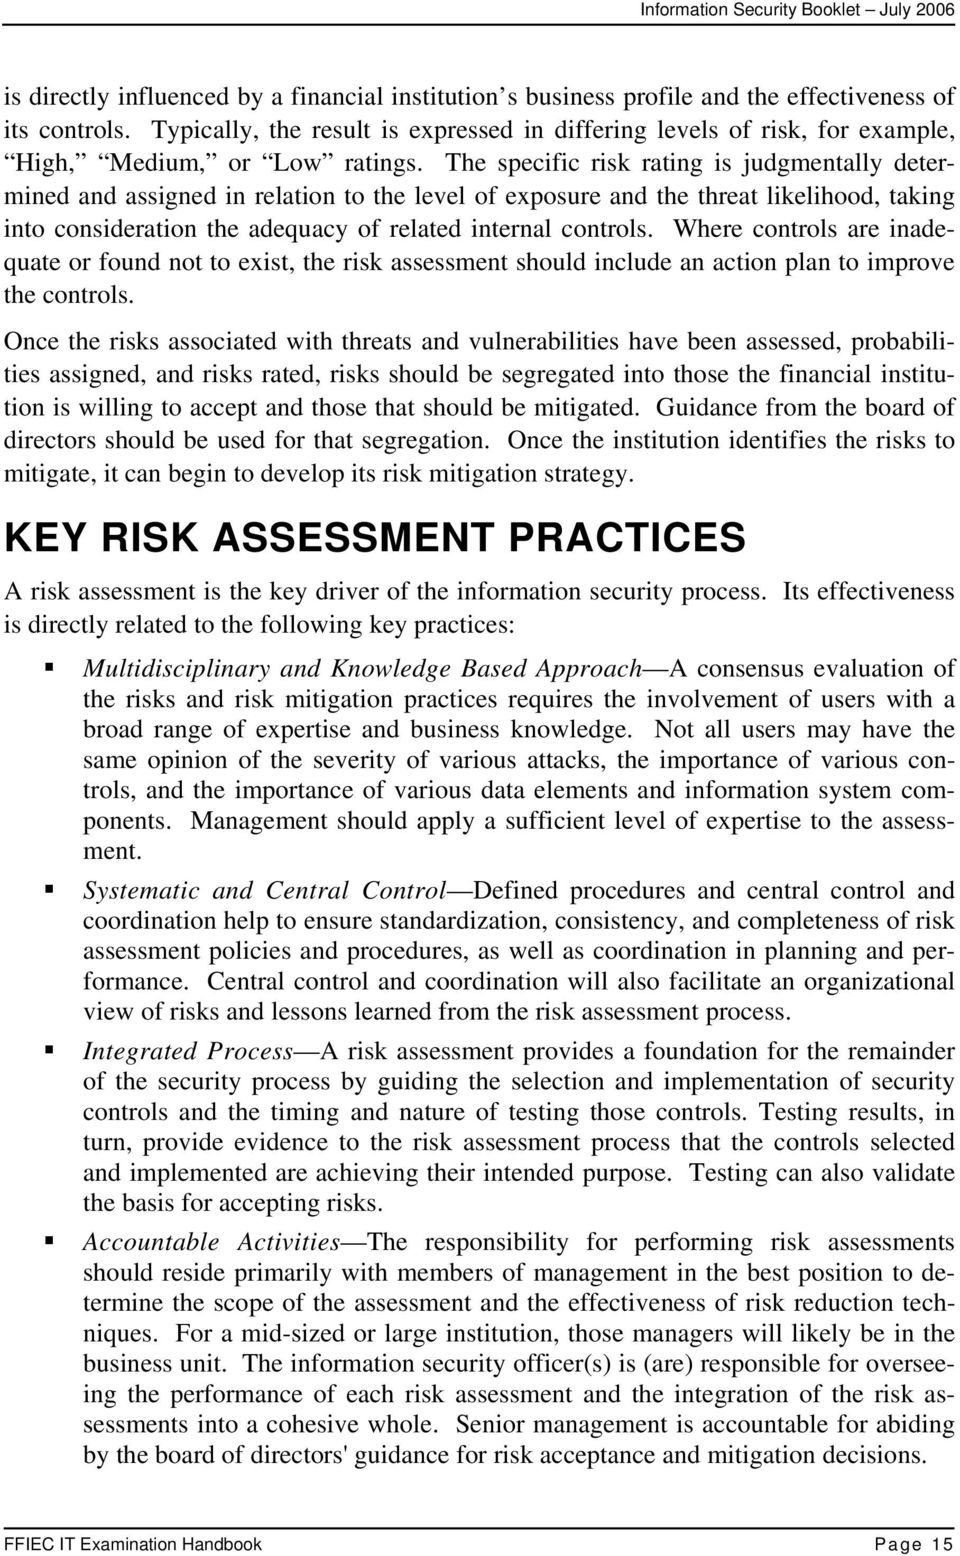 The specific risk rating is judgmentally determined and assigned in relation to the level of exposure and the threat likelihood, taking into consideration the adequacy of related internal controls.